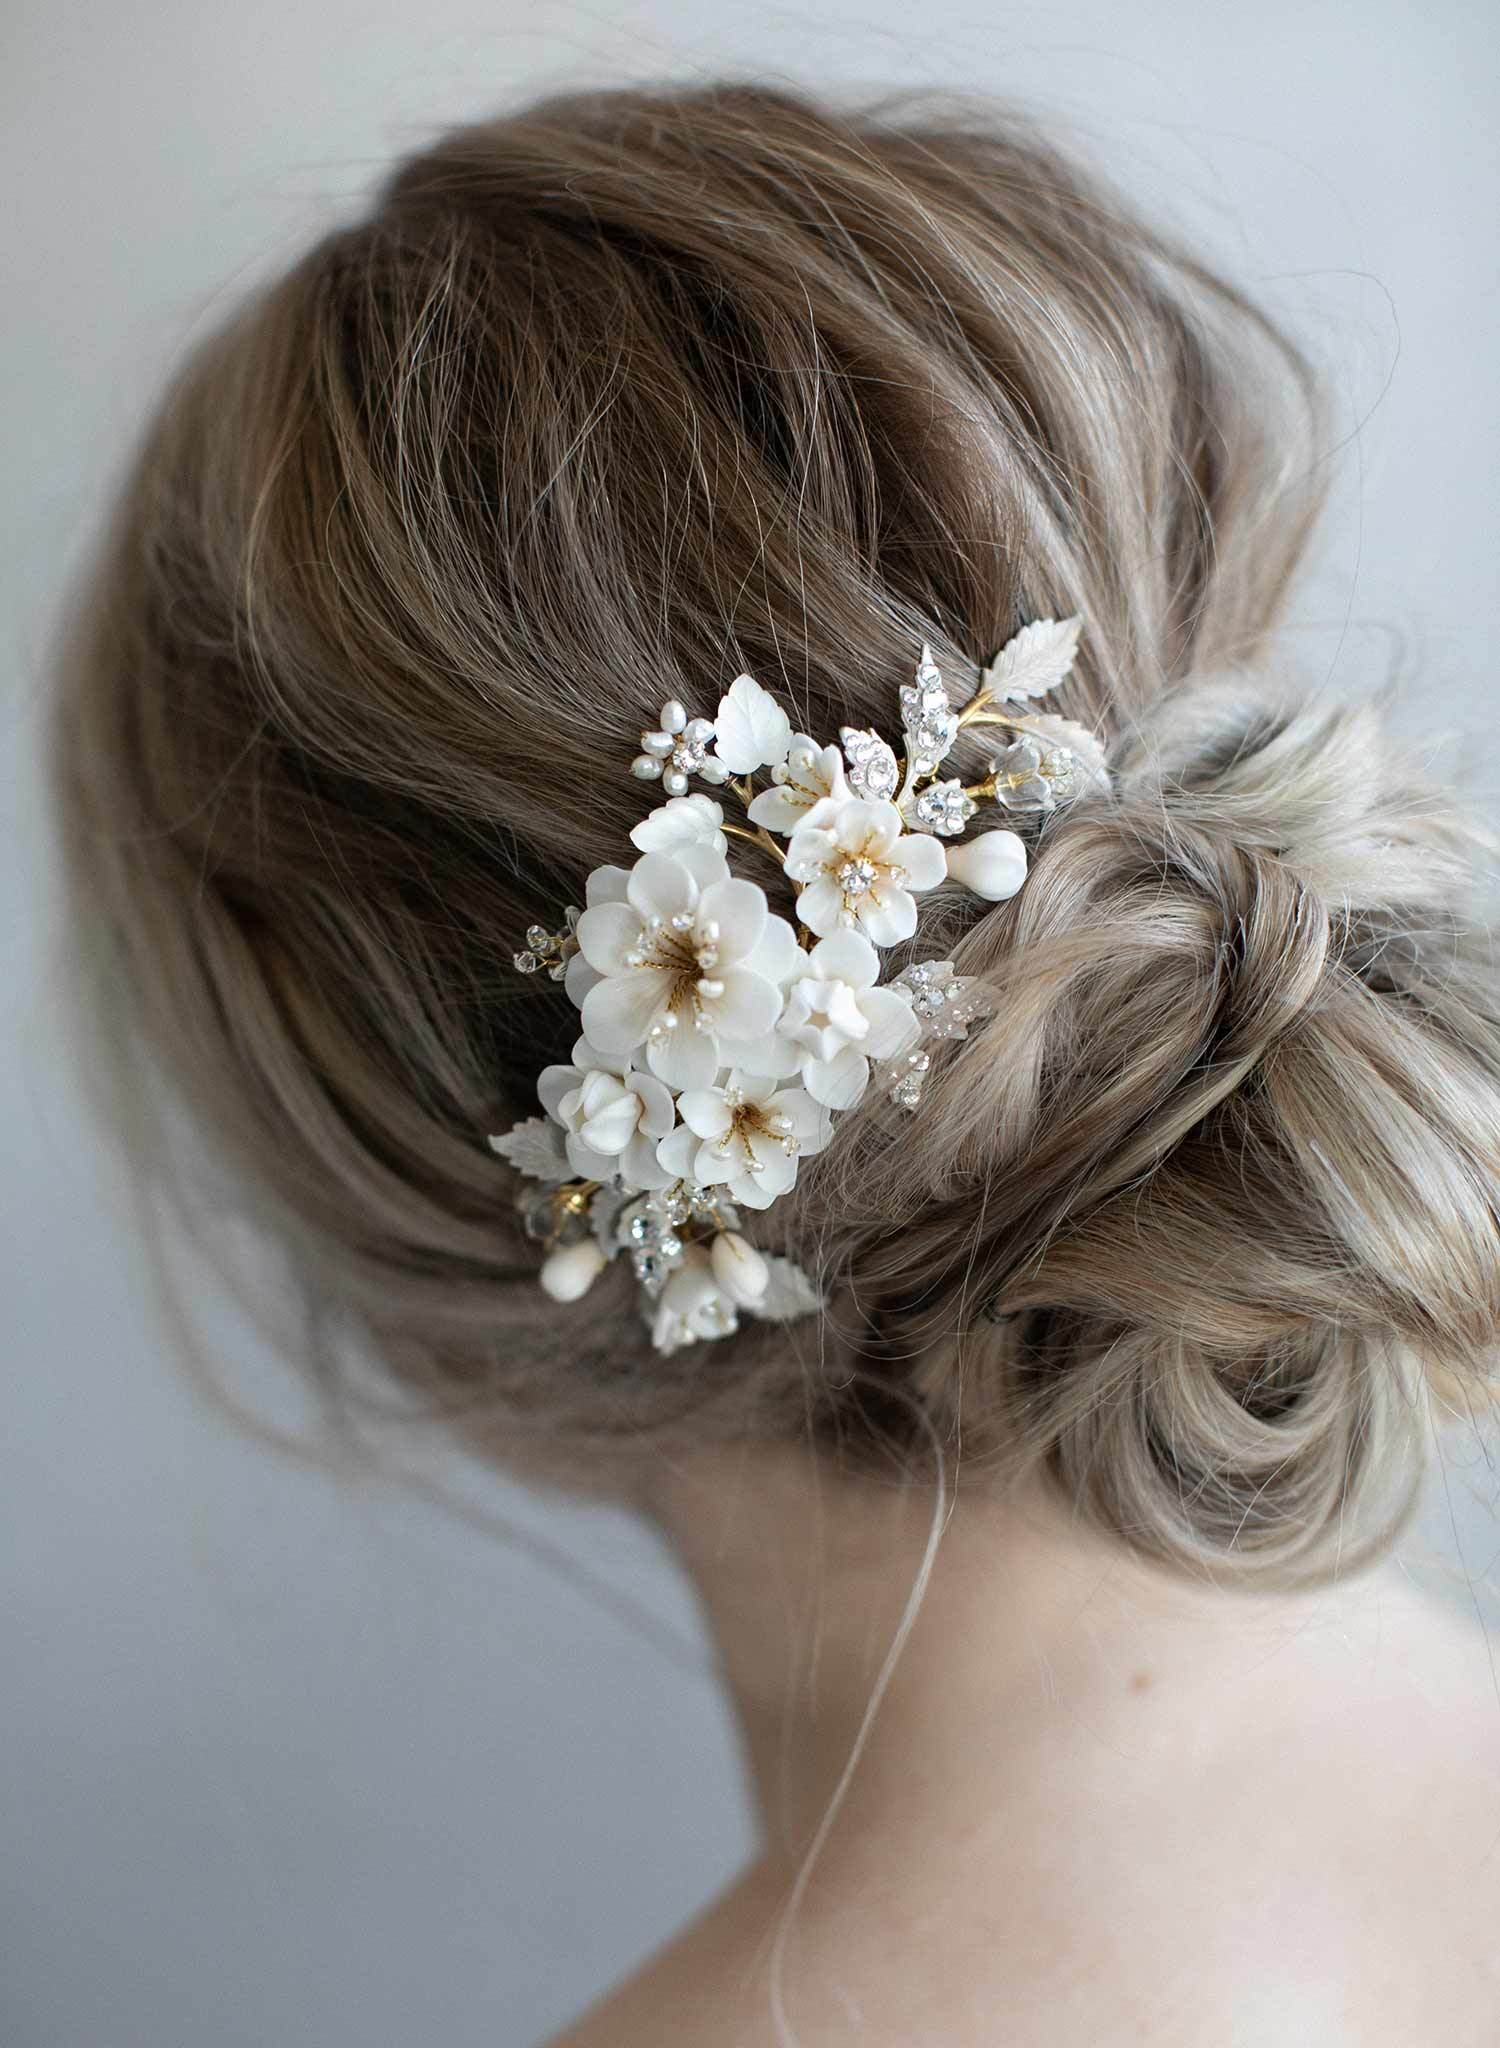 978-bridal-ivory-cream-hair-flowers-bridal-comb-headpiece-twigsandhoney_0007_2048x2048.jpg